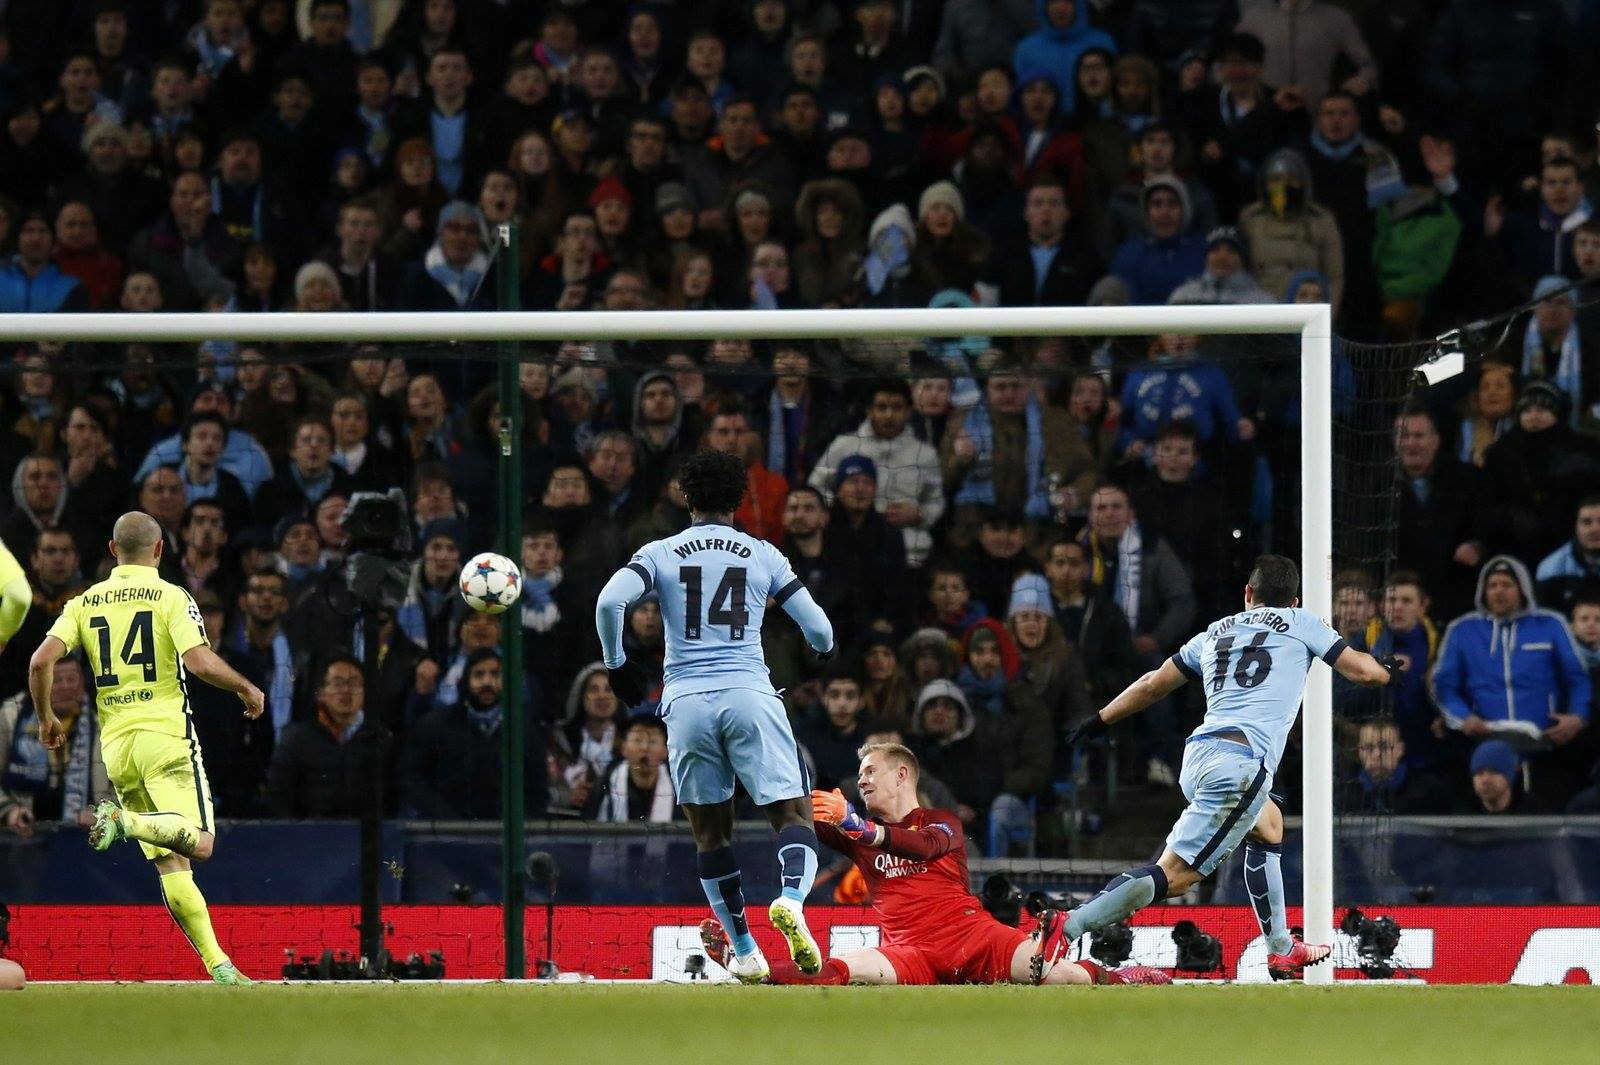 Sizzling Sergio - Can Aguero end City's winless streak at Anfield? Courtesy@MCFC